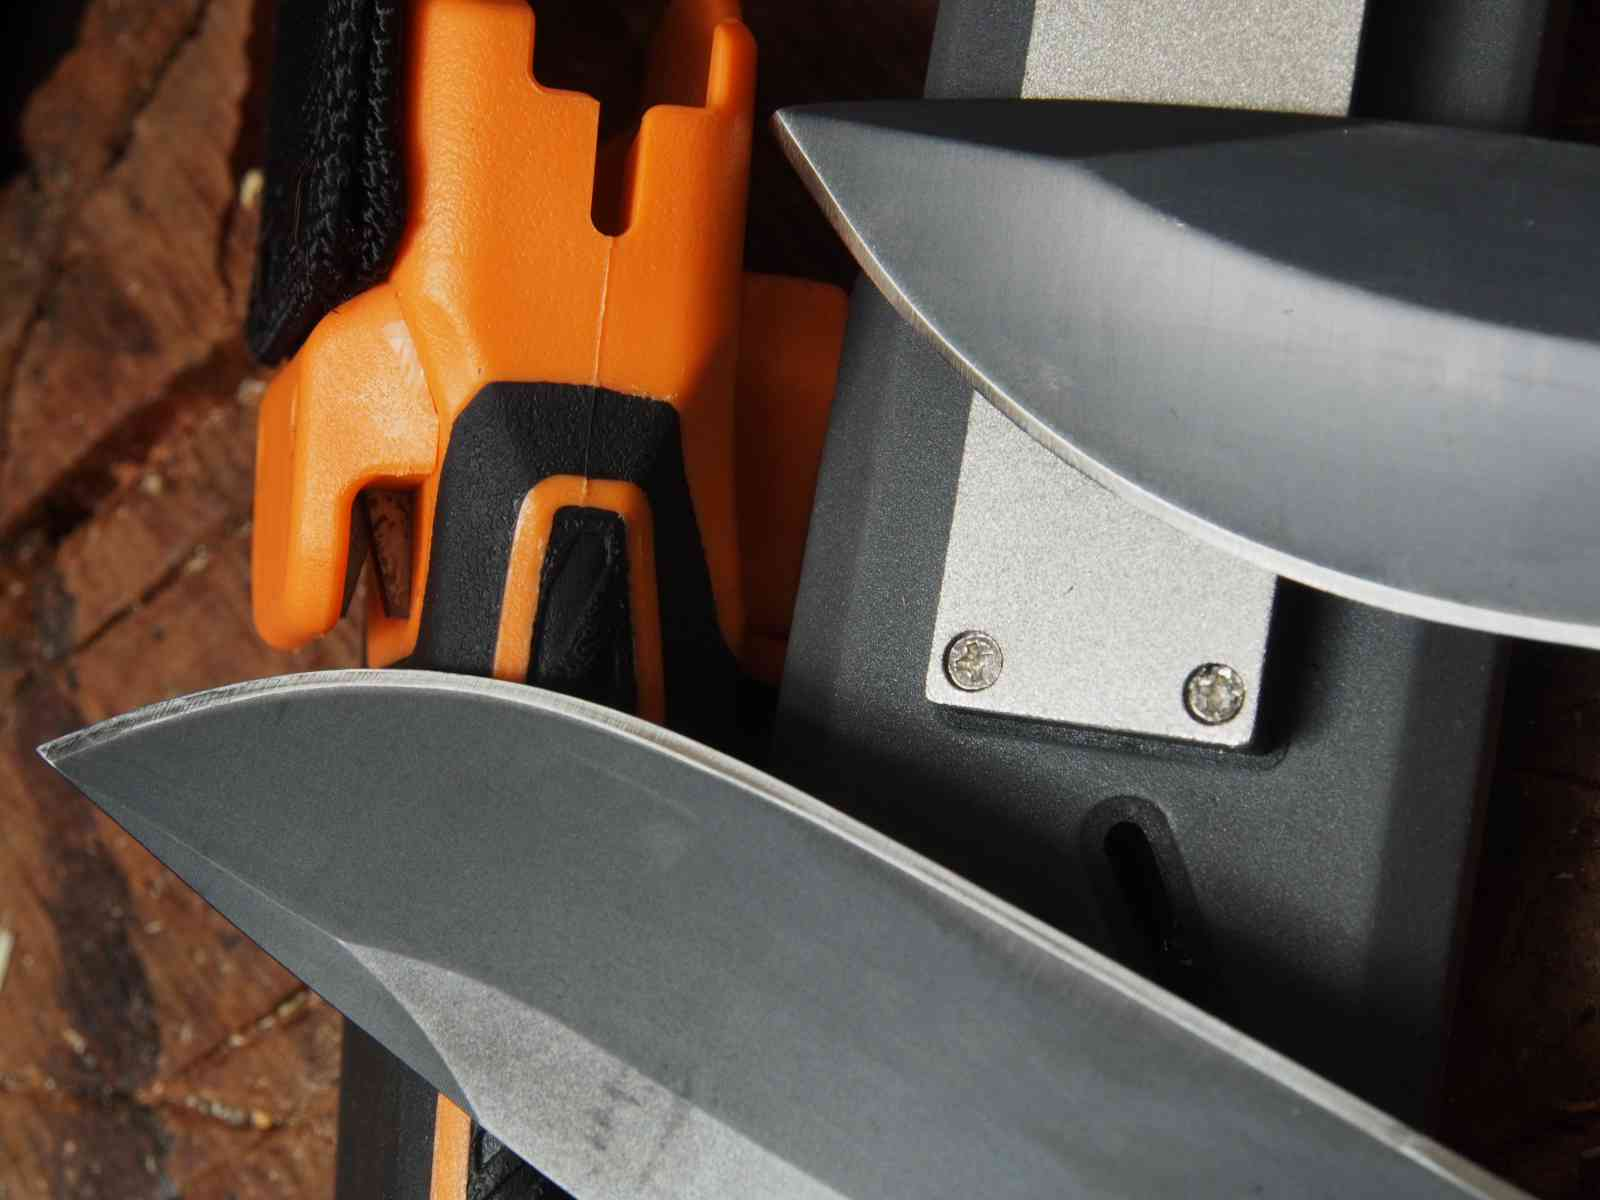 Gerber Bear Grylls Ultimate - Messerschärfer